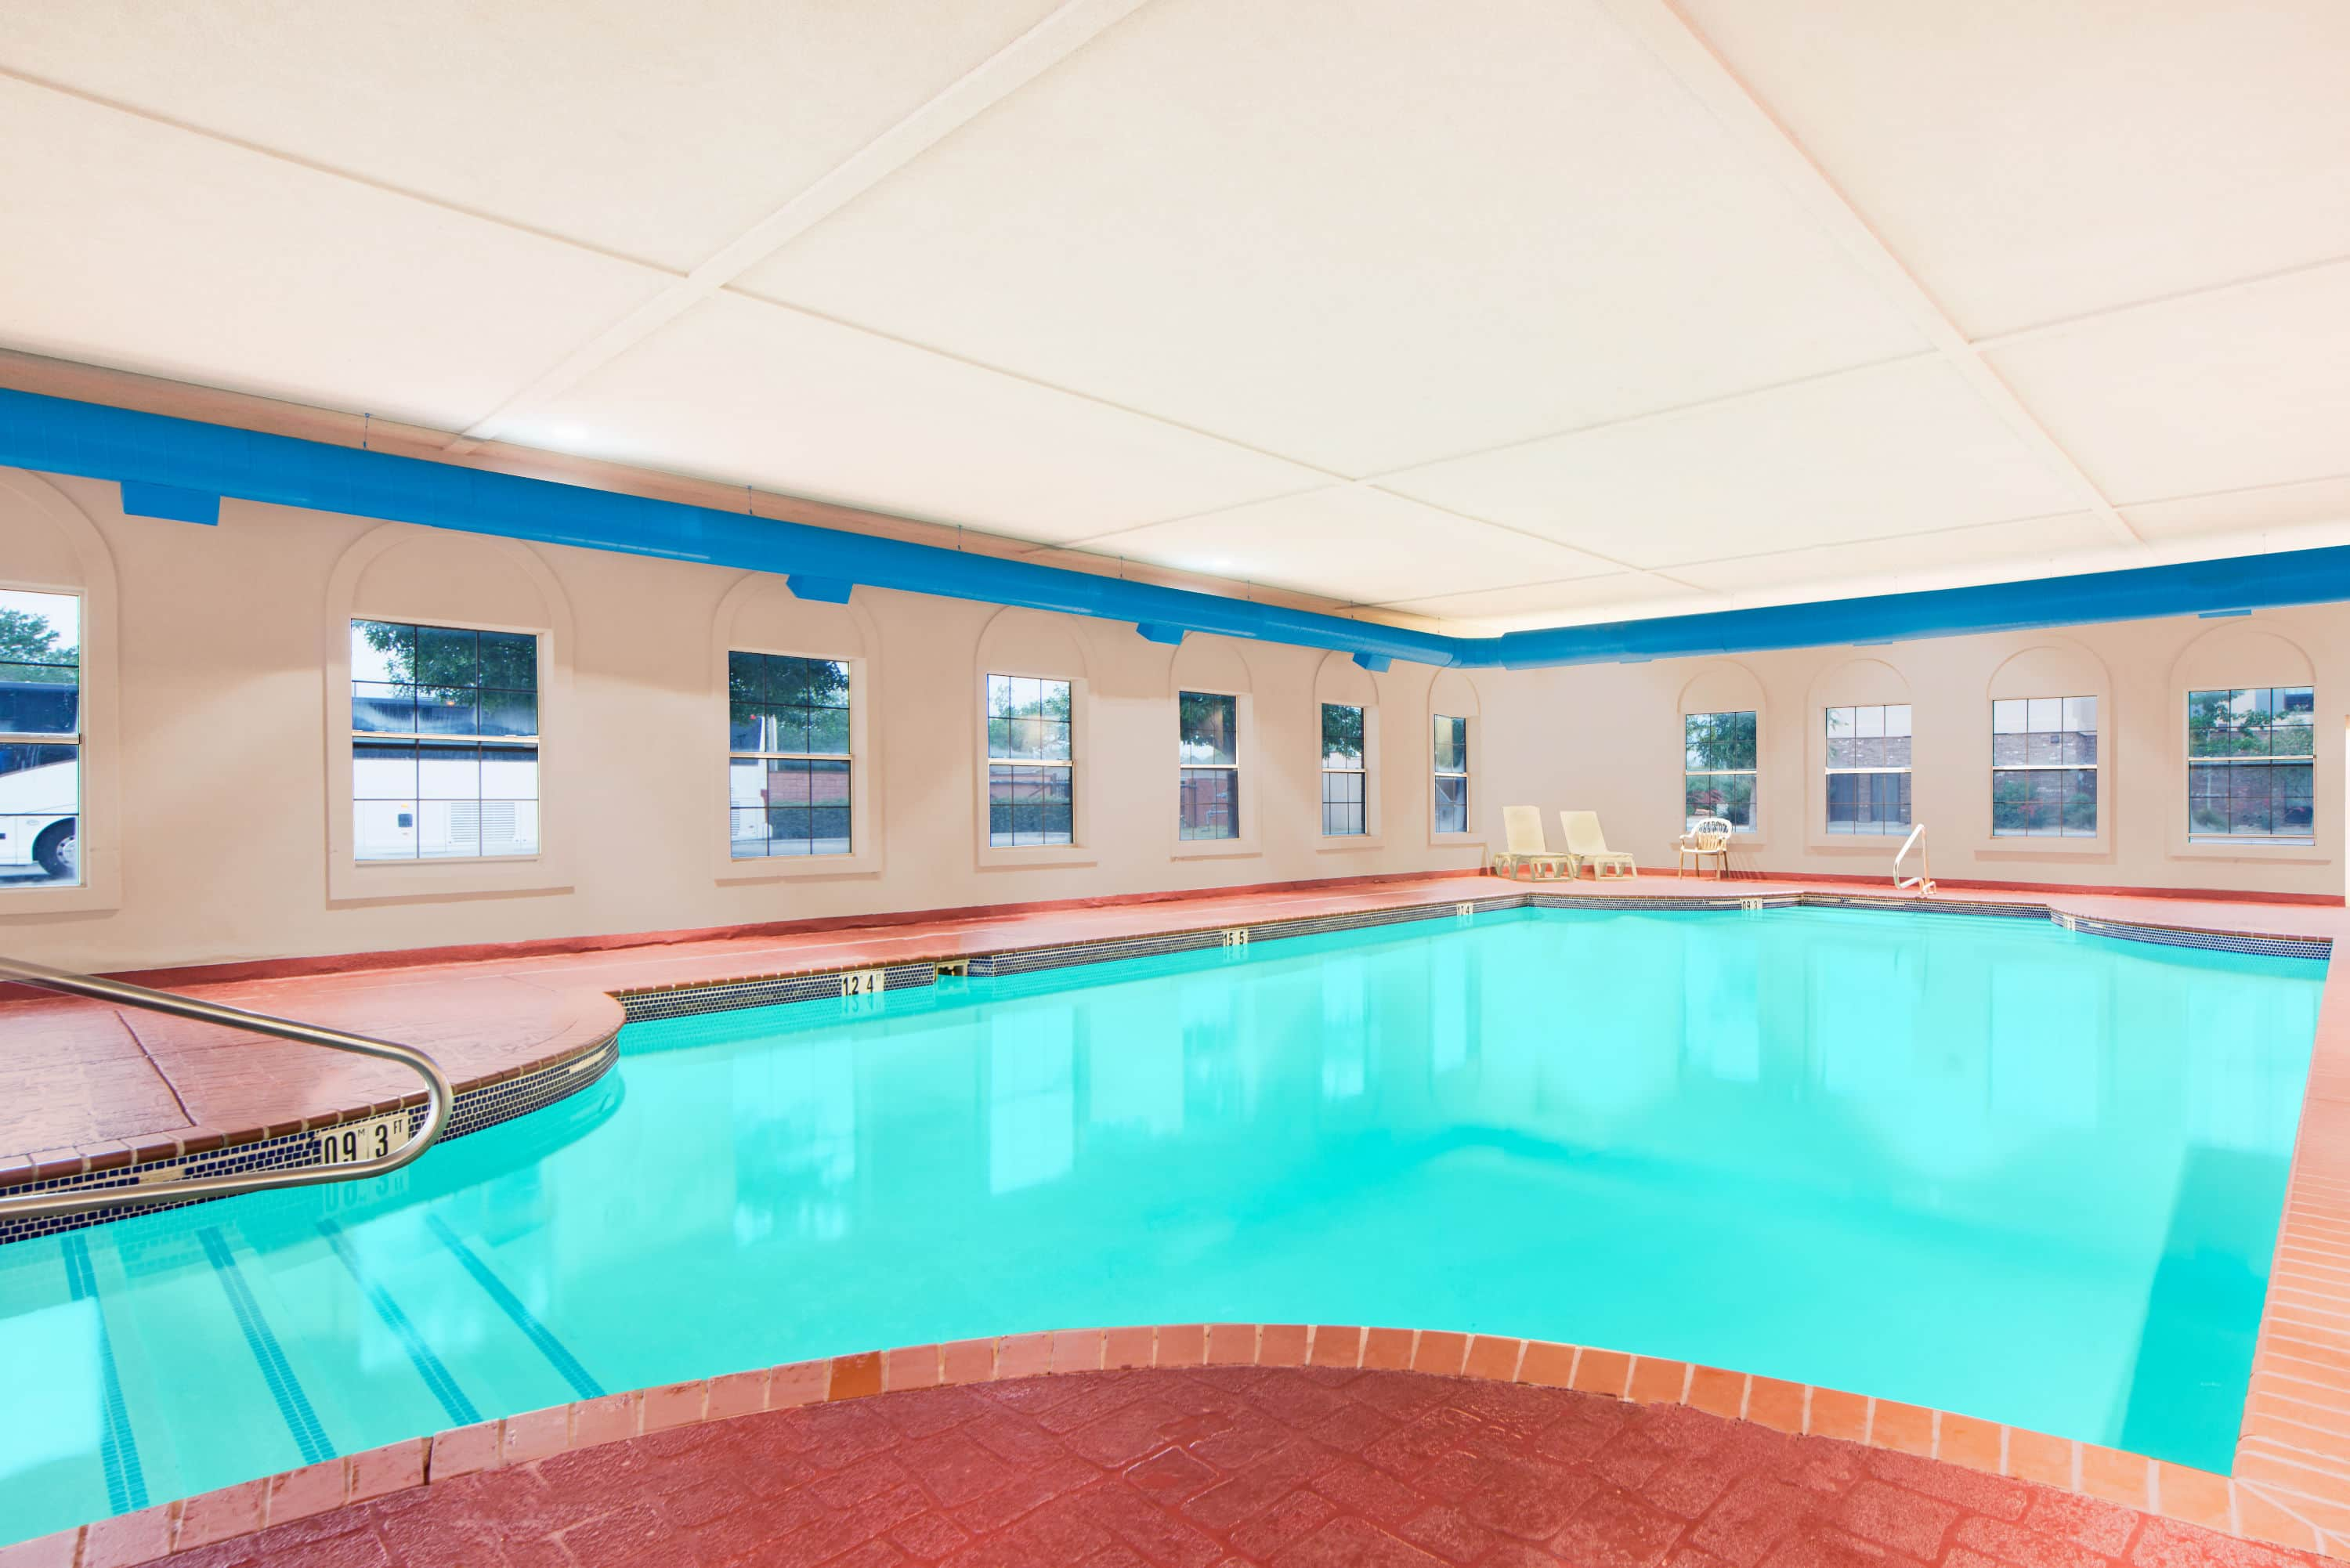 Fabulous Pool At The Super Lubbock Tx In Texas With Hotels Near Airport